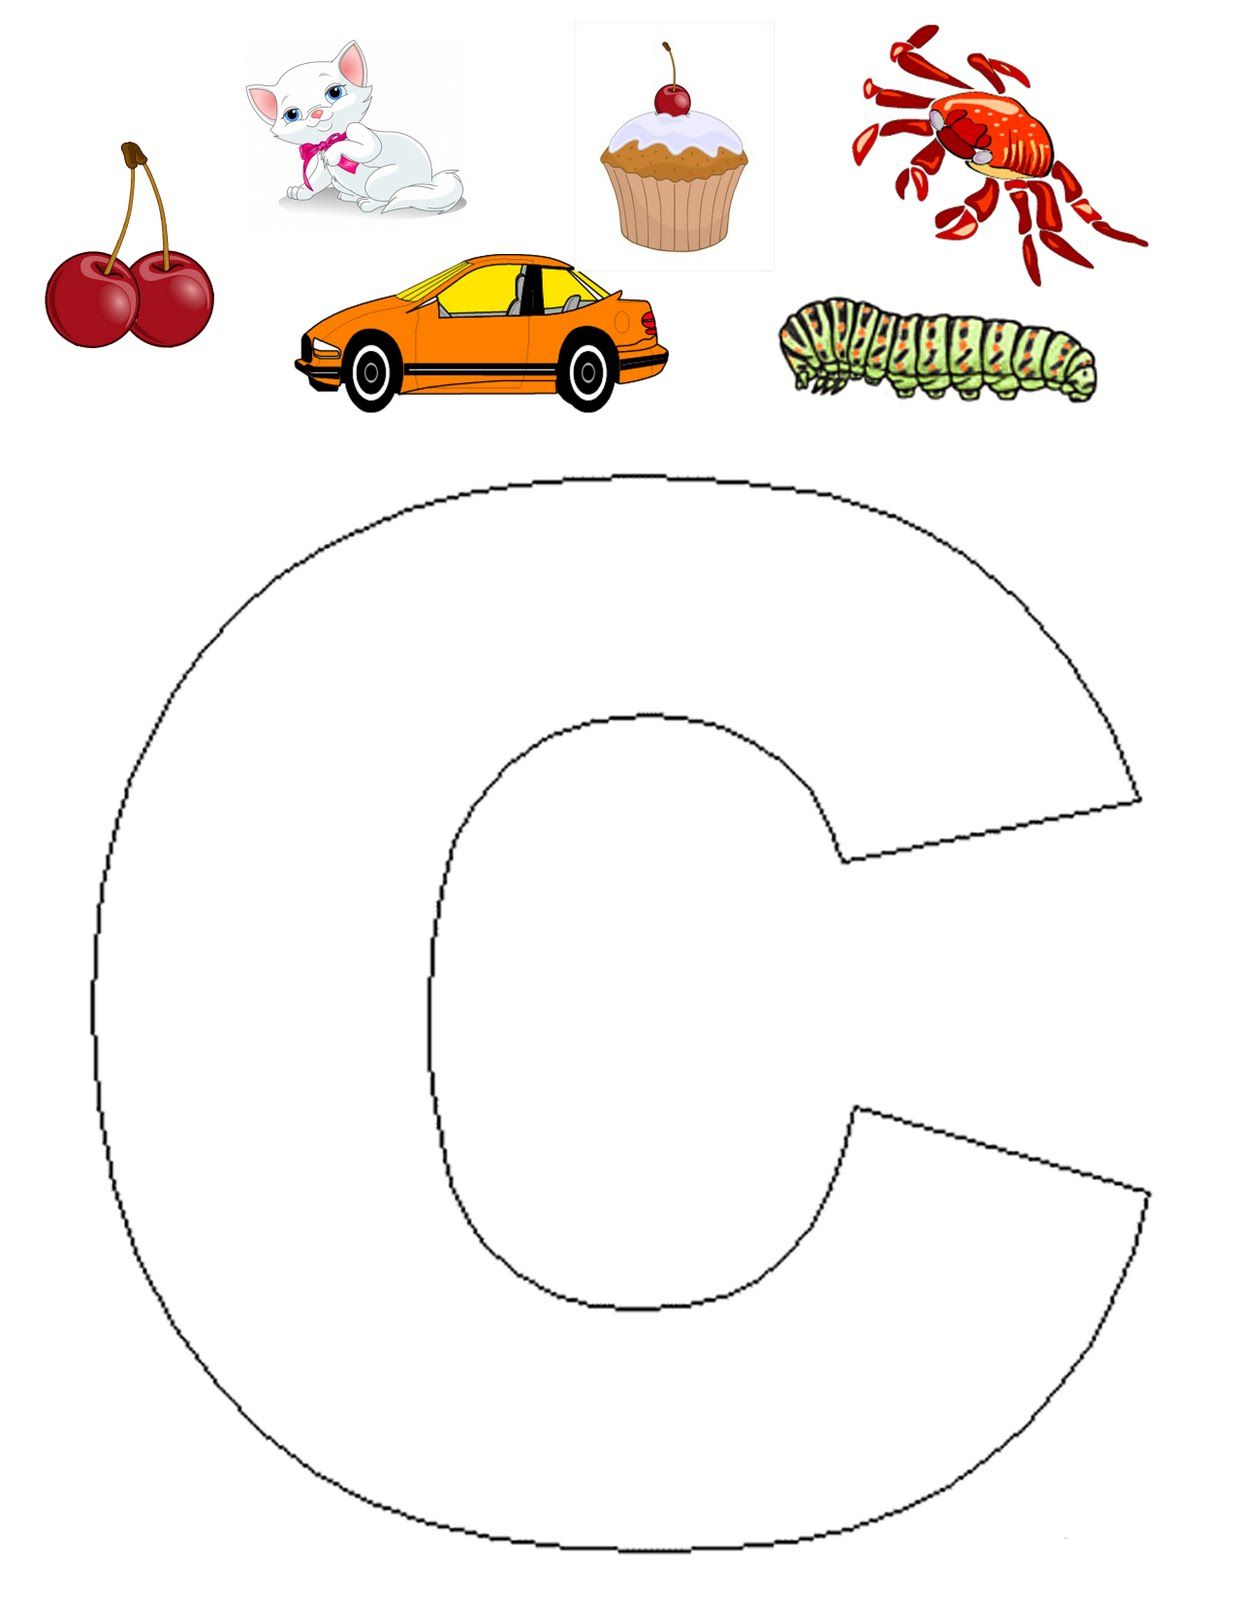 Letter C Craft Want To Make A Crab Show In The Picture